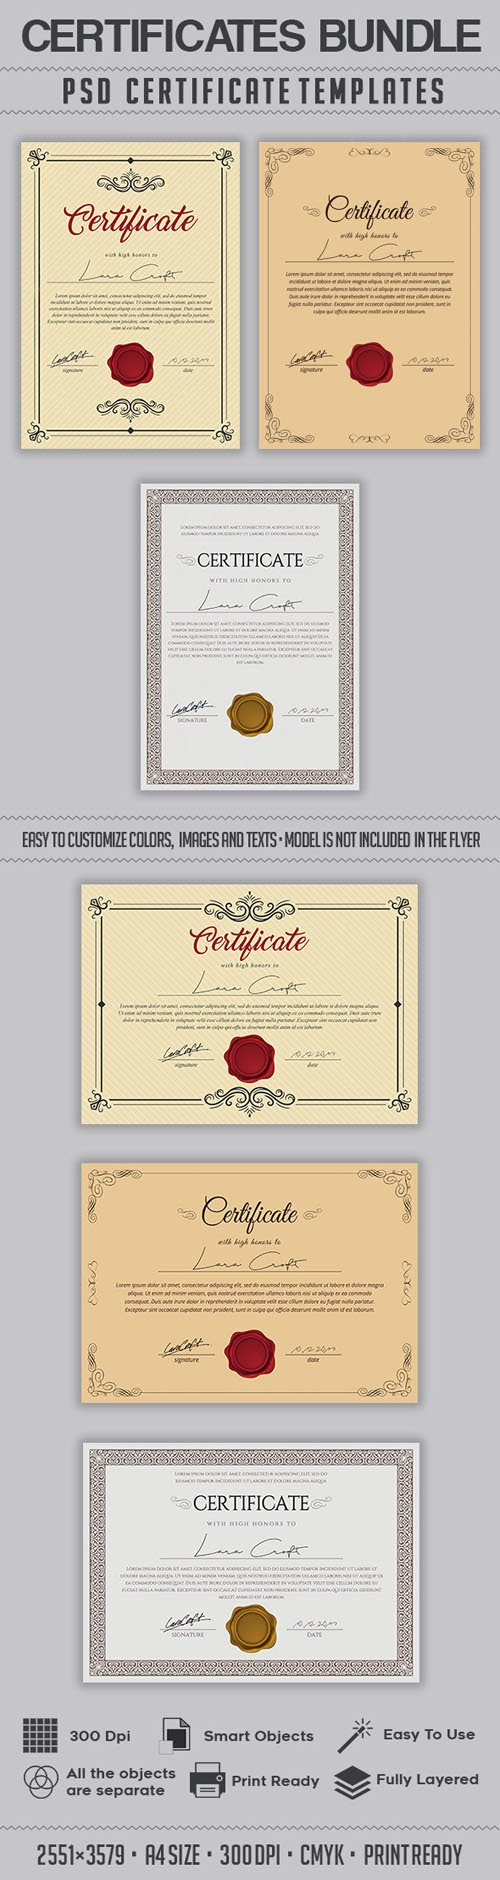 Multipurpose Certificates PSD Bundle Templates